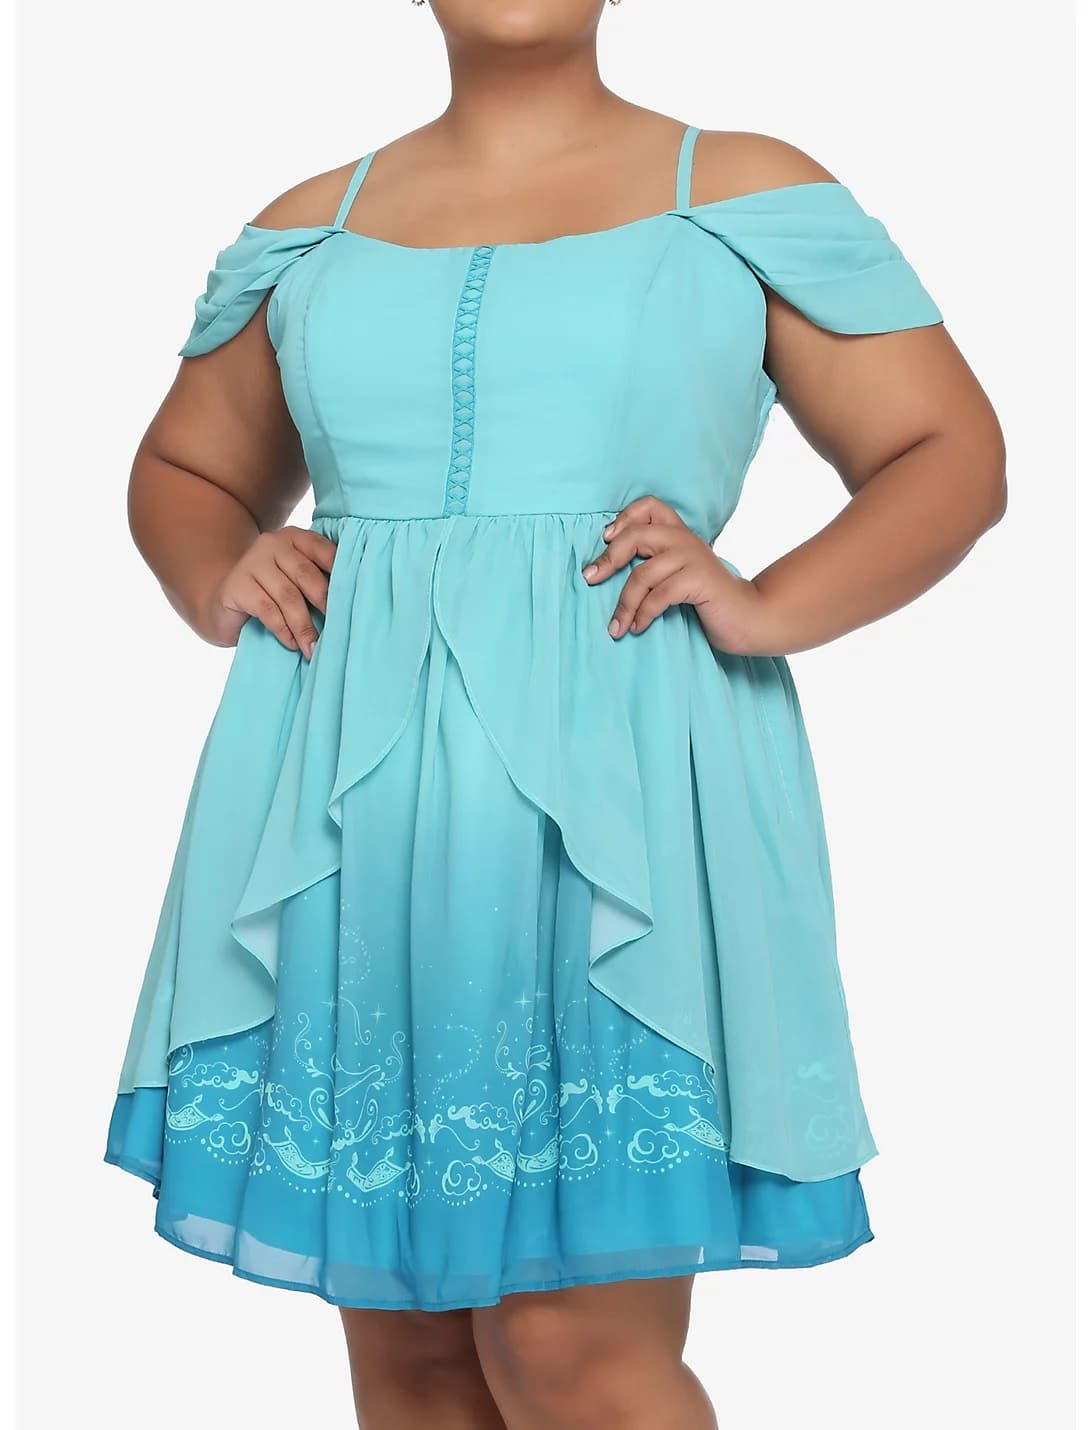 Her Universe Disney Princess dress collection is now available at Hot Topic 22